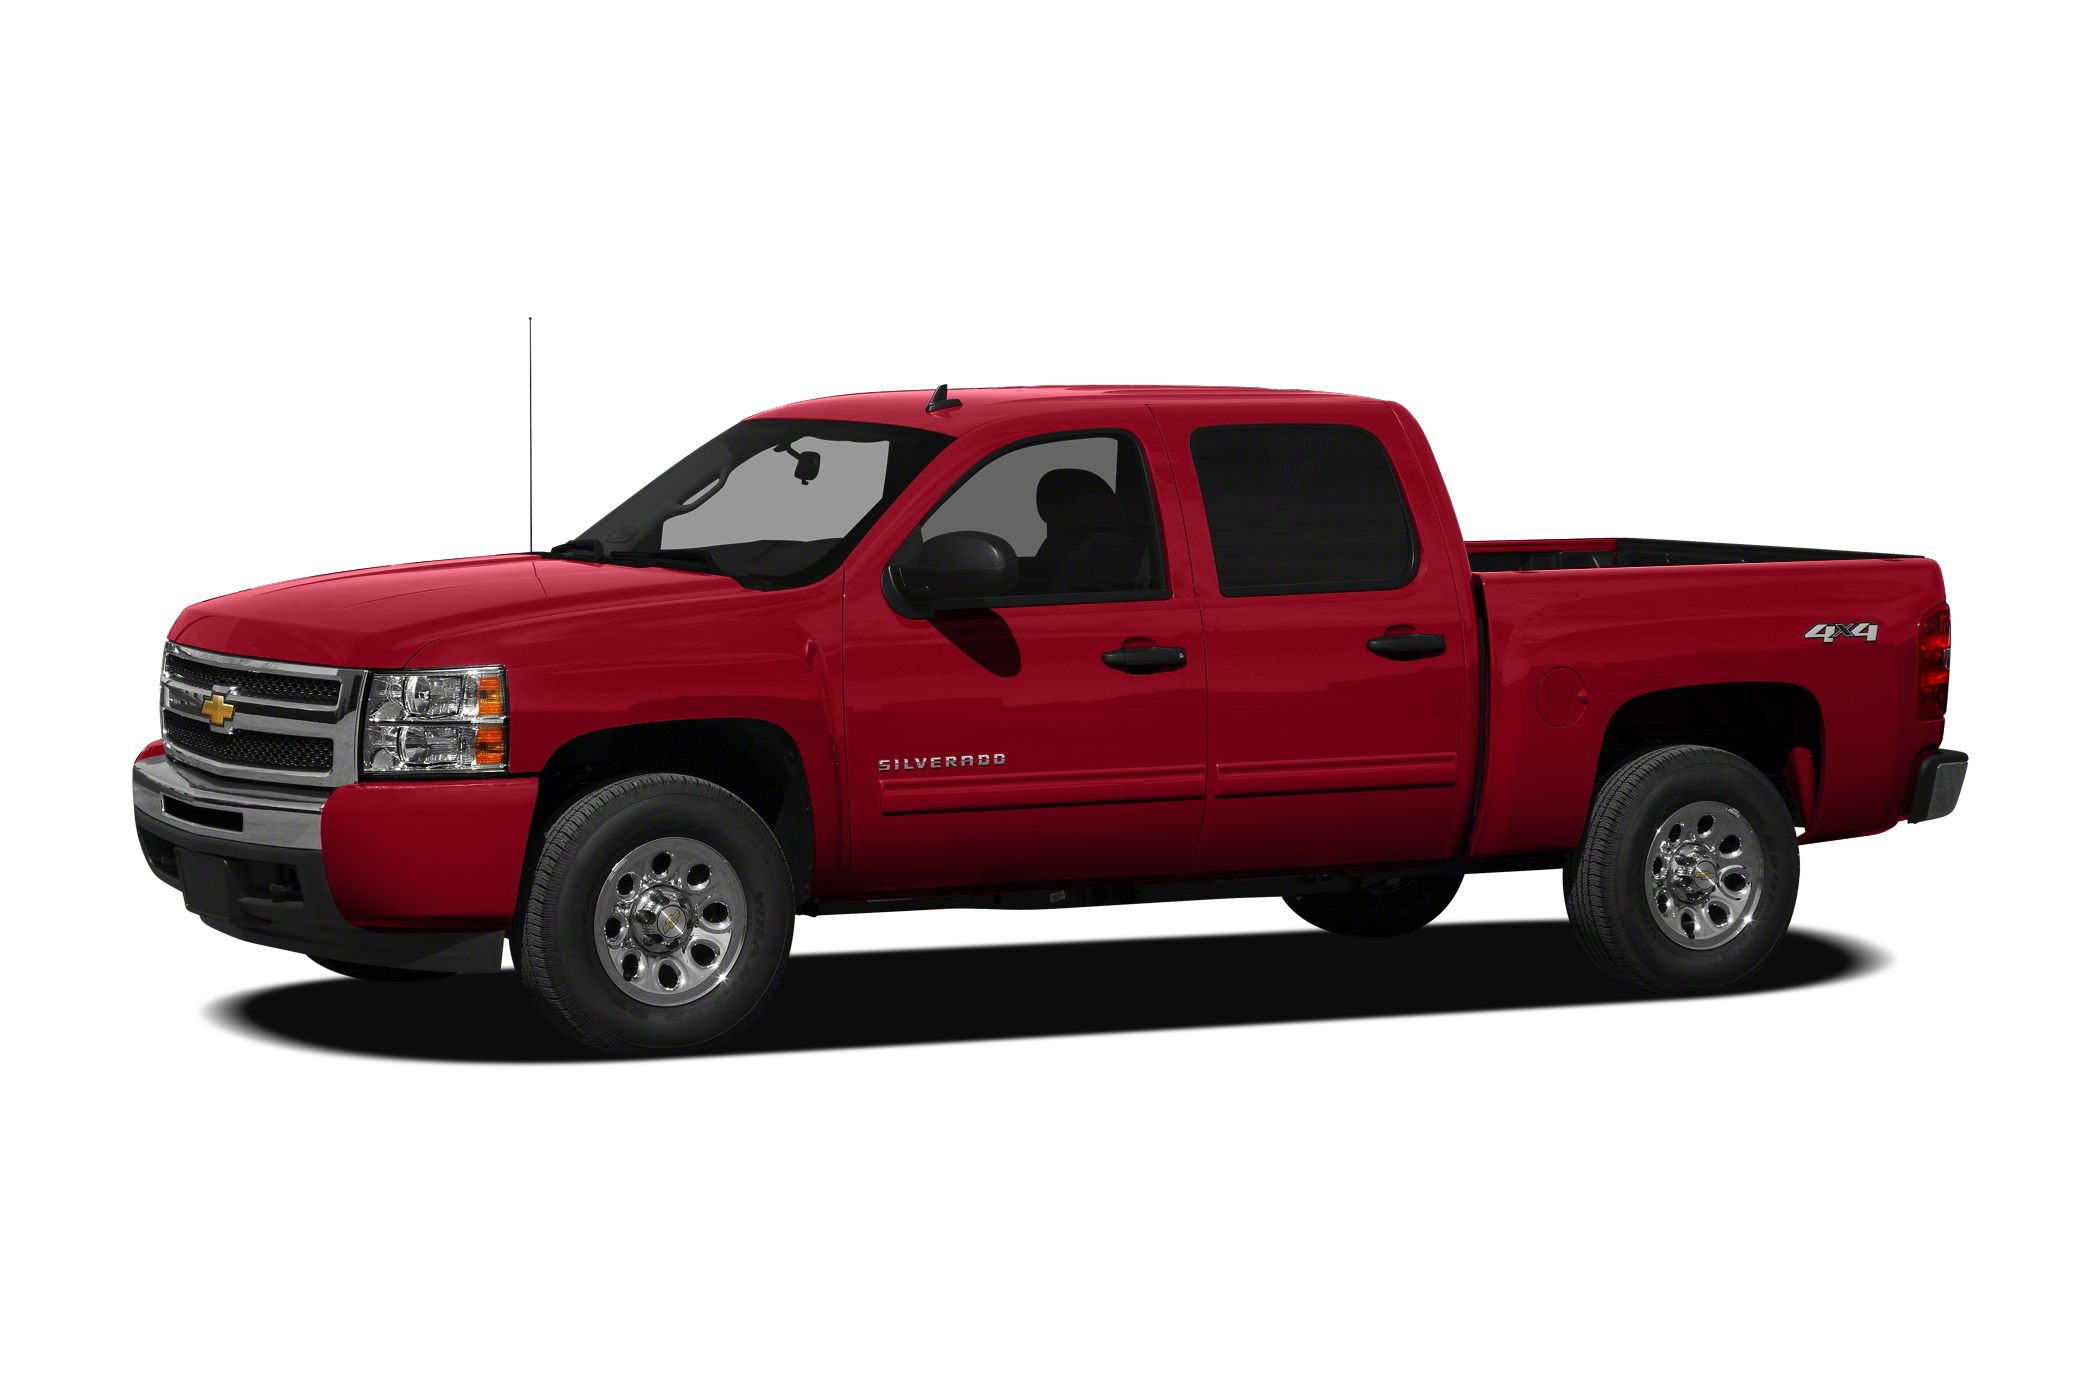 2011 Chevrolet Silverado 1500 LT Silverado 1500 LT and 4D Crew Cab Crew Cab Flex Fuel When was